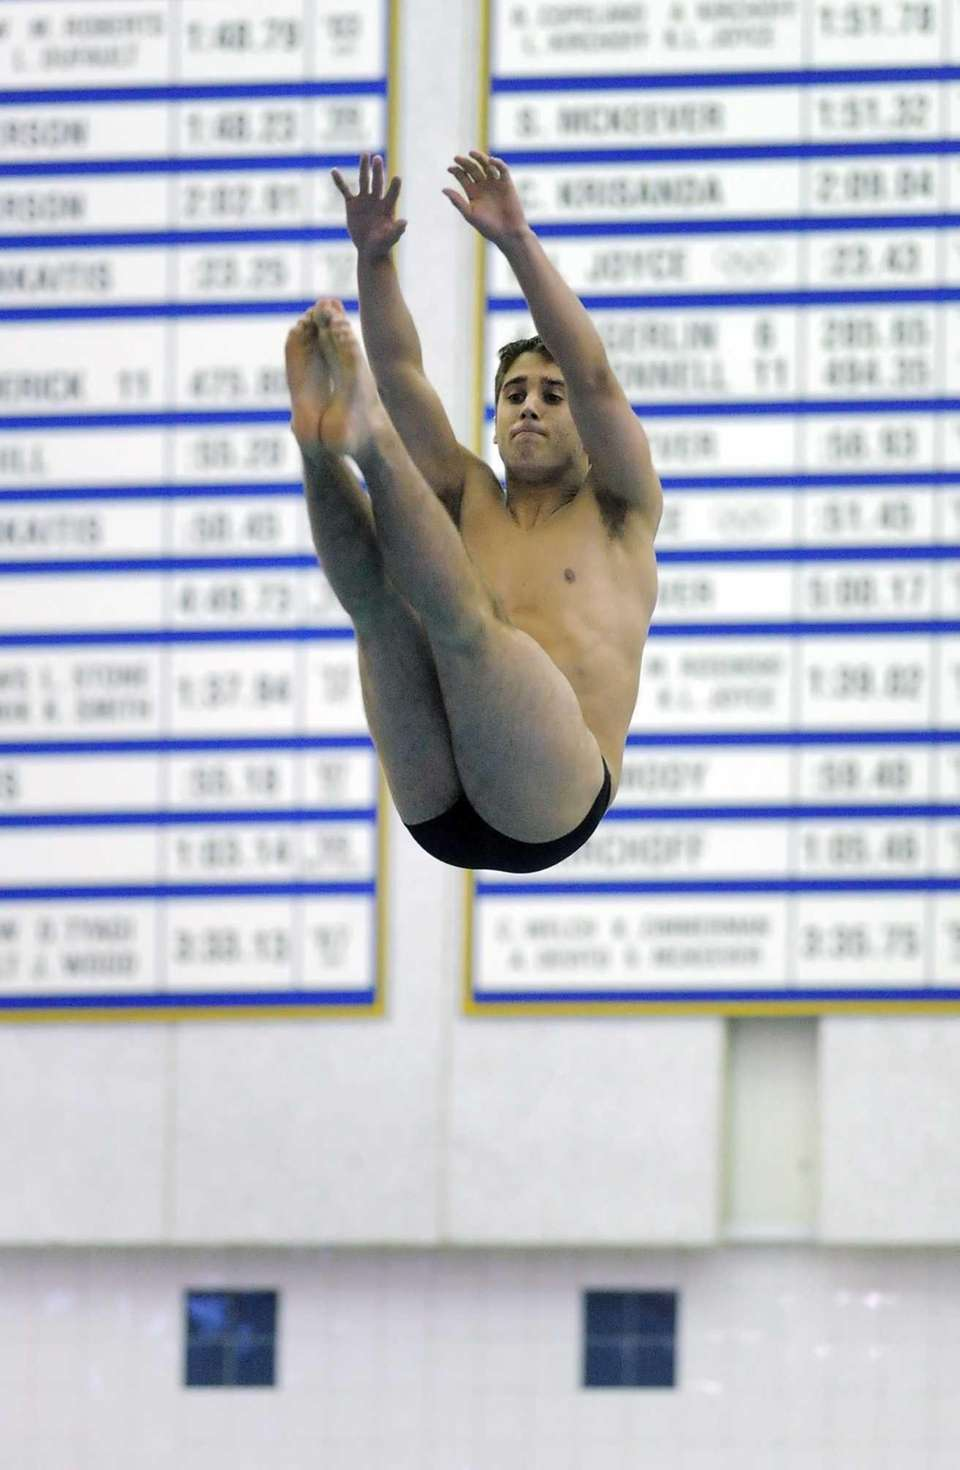 St. Anthony's Noel Theroux performs his second dive.